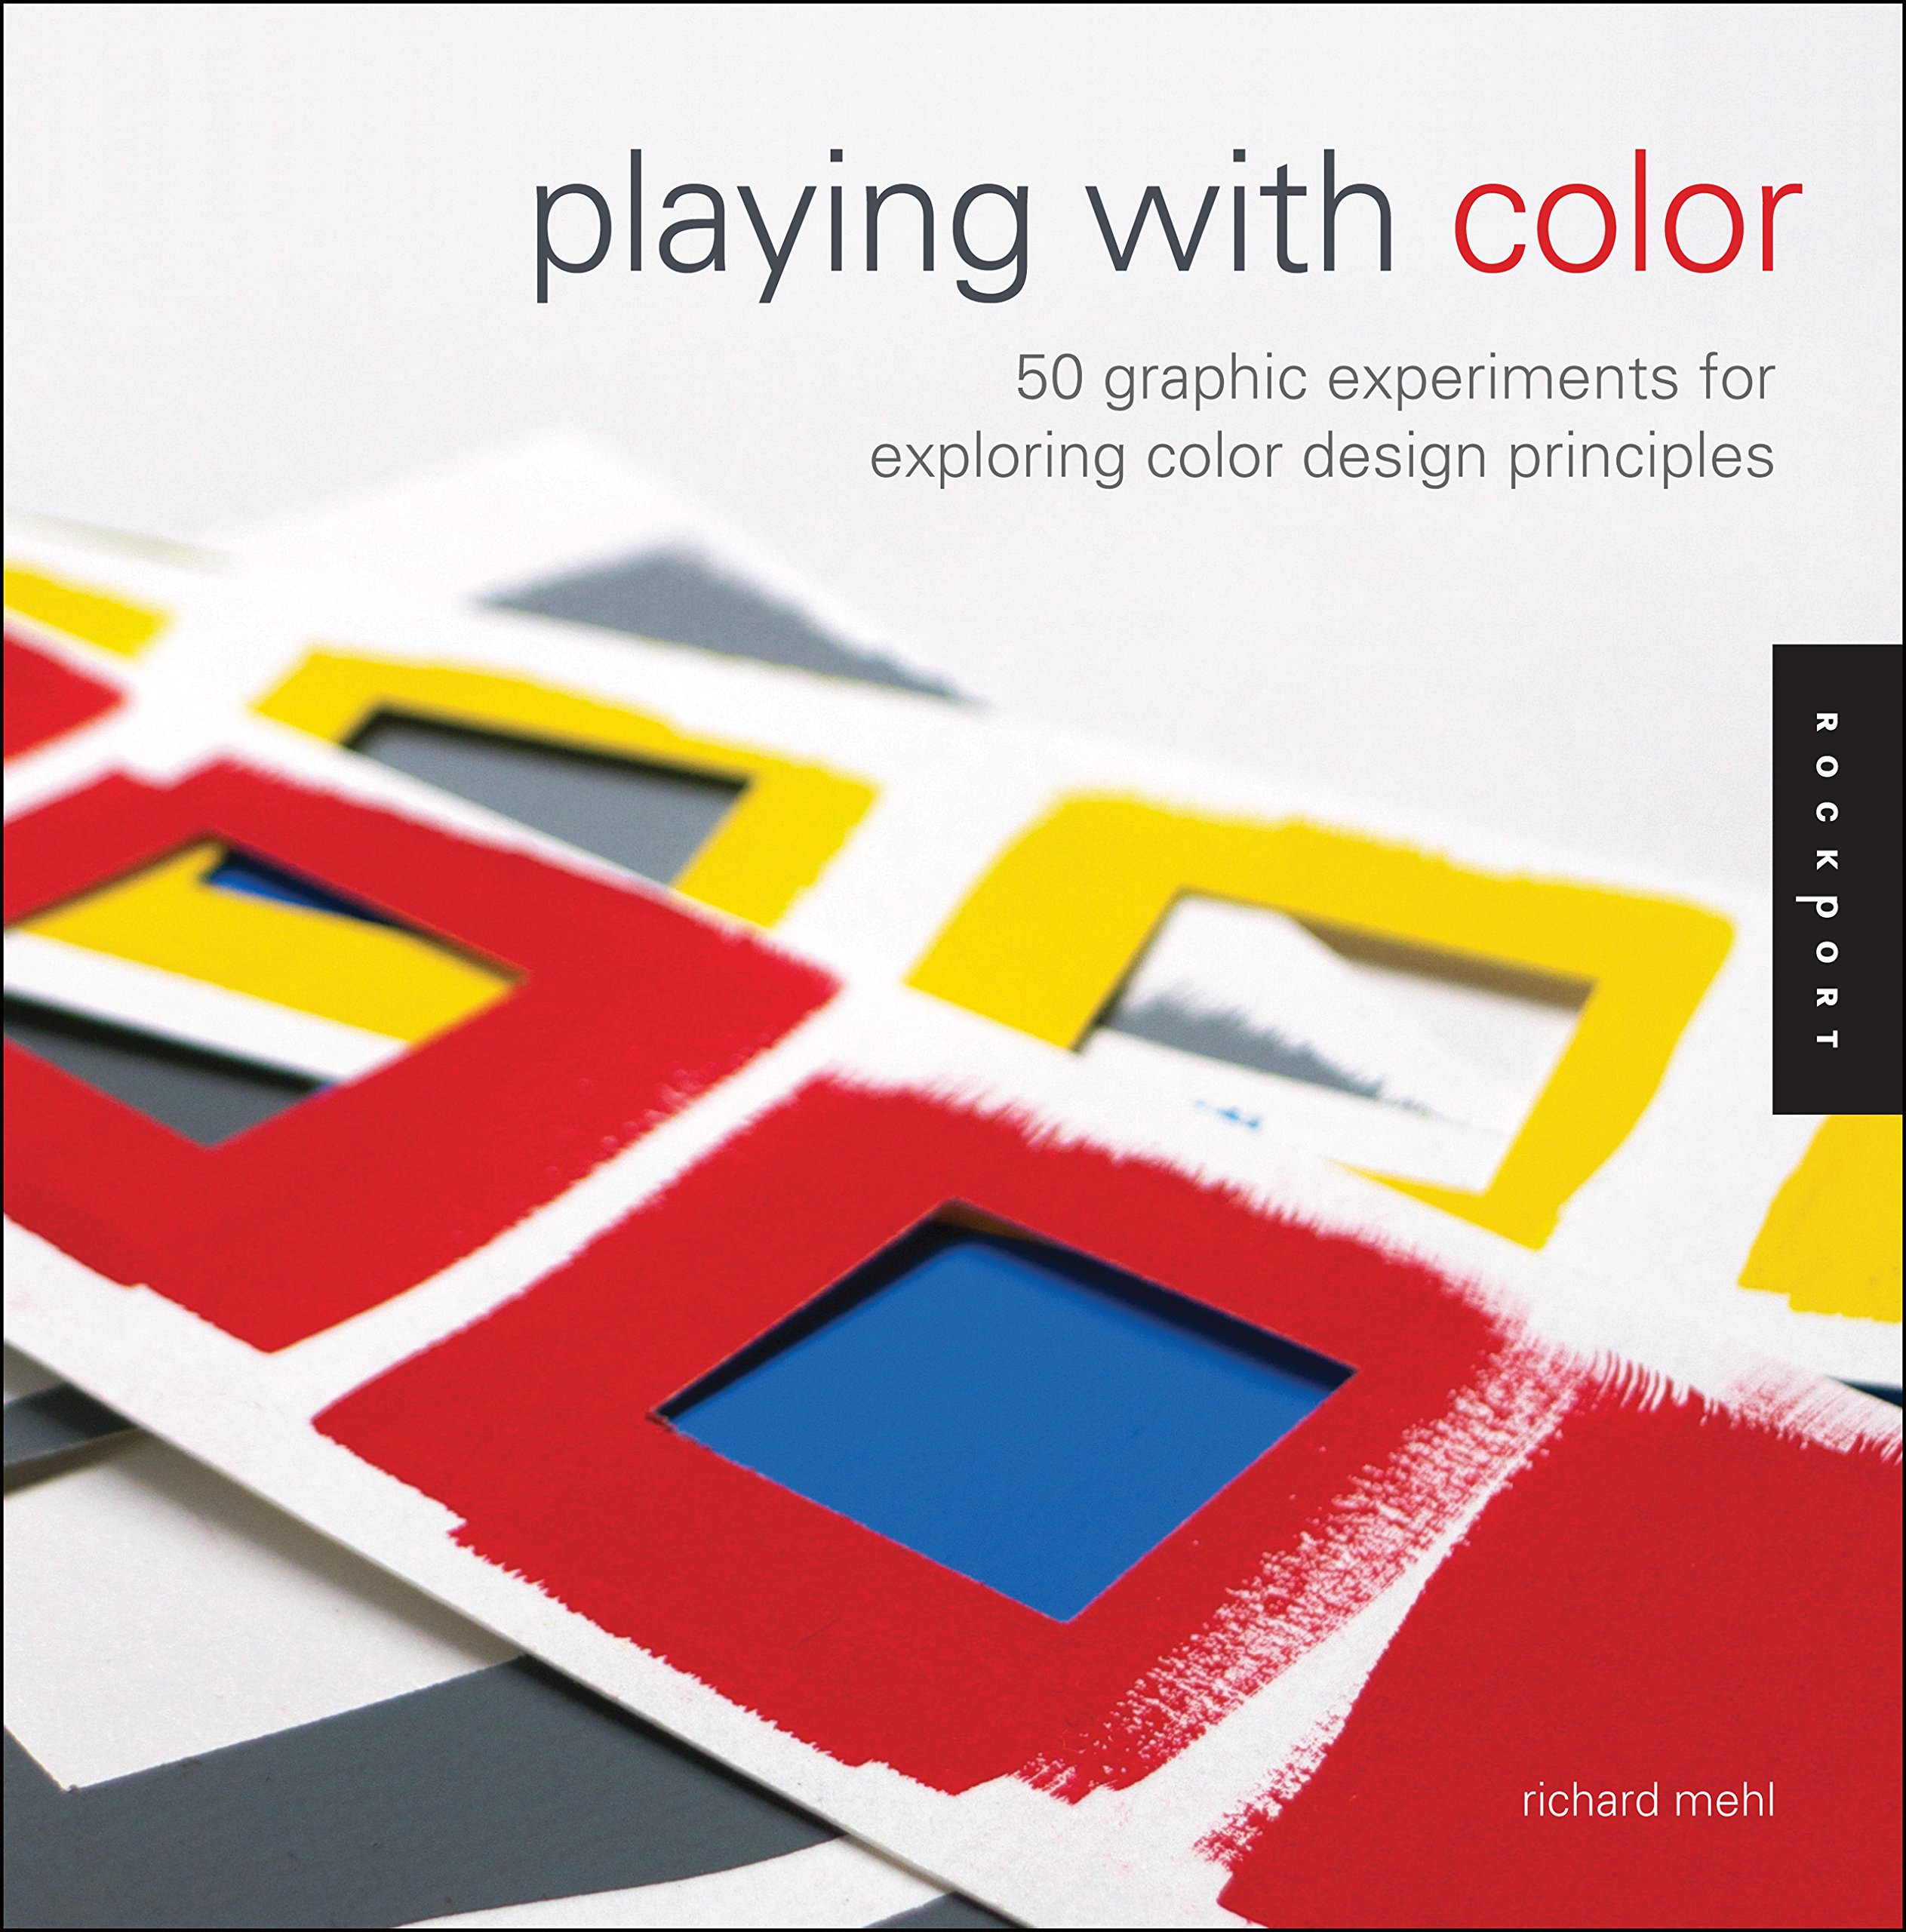 Playing with Color: 50 Graphic Experiments for Exploring Color Design  Principles: Richard Mehl: 9781592538089: Amazon.com: Books